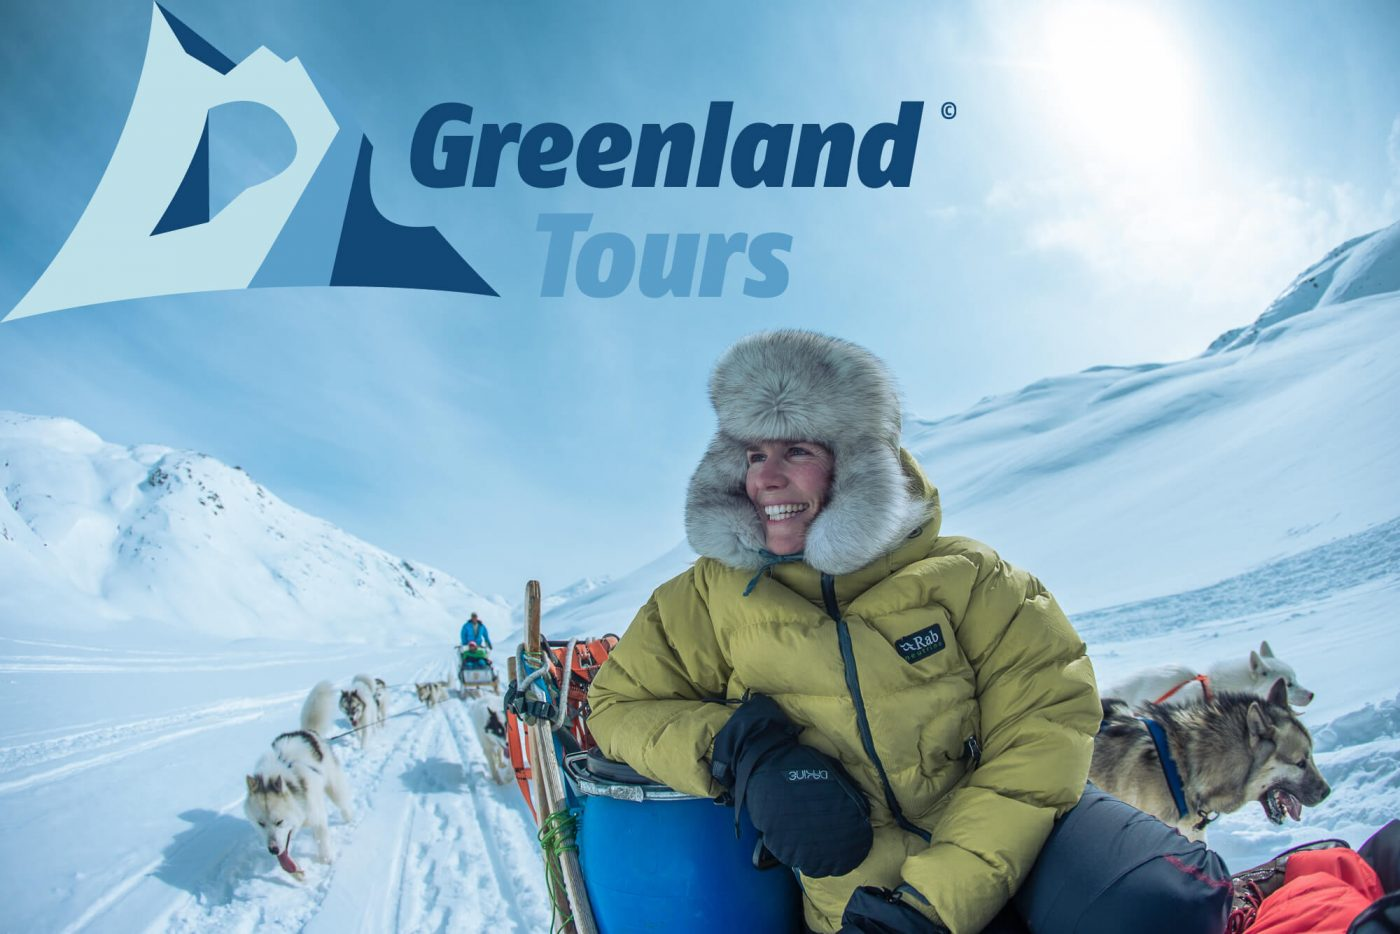 Greenland Tours: Hounds of Snow